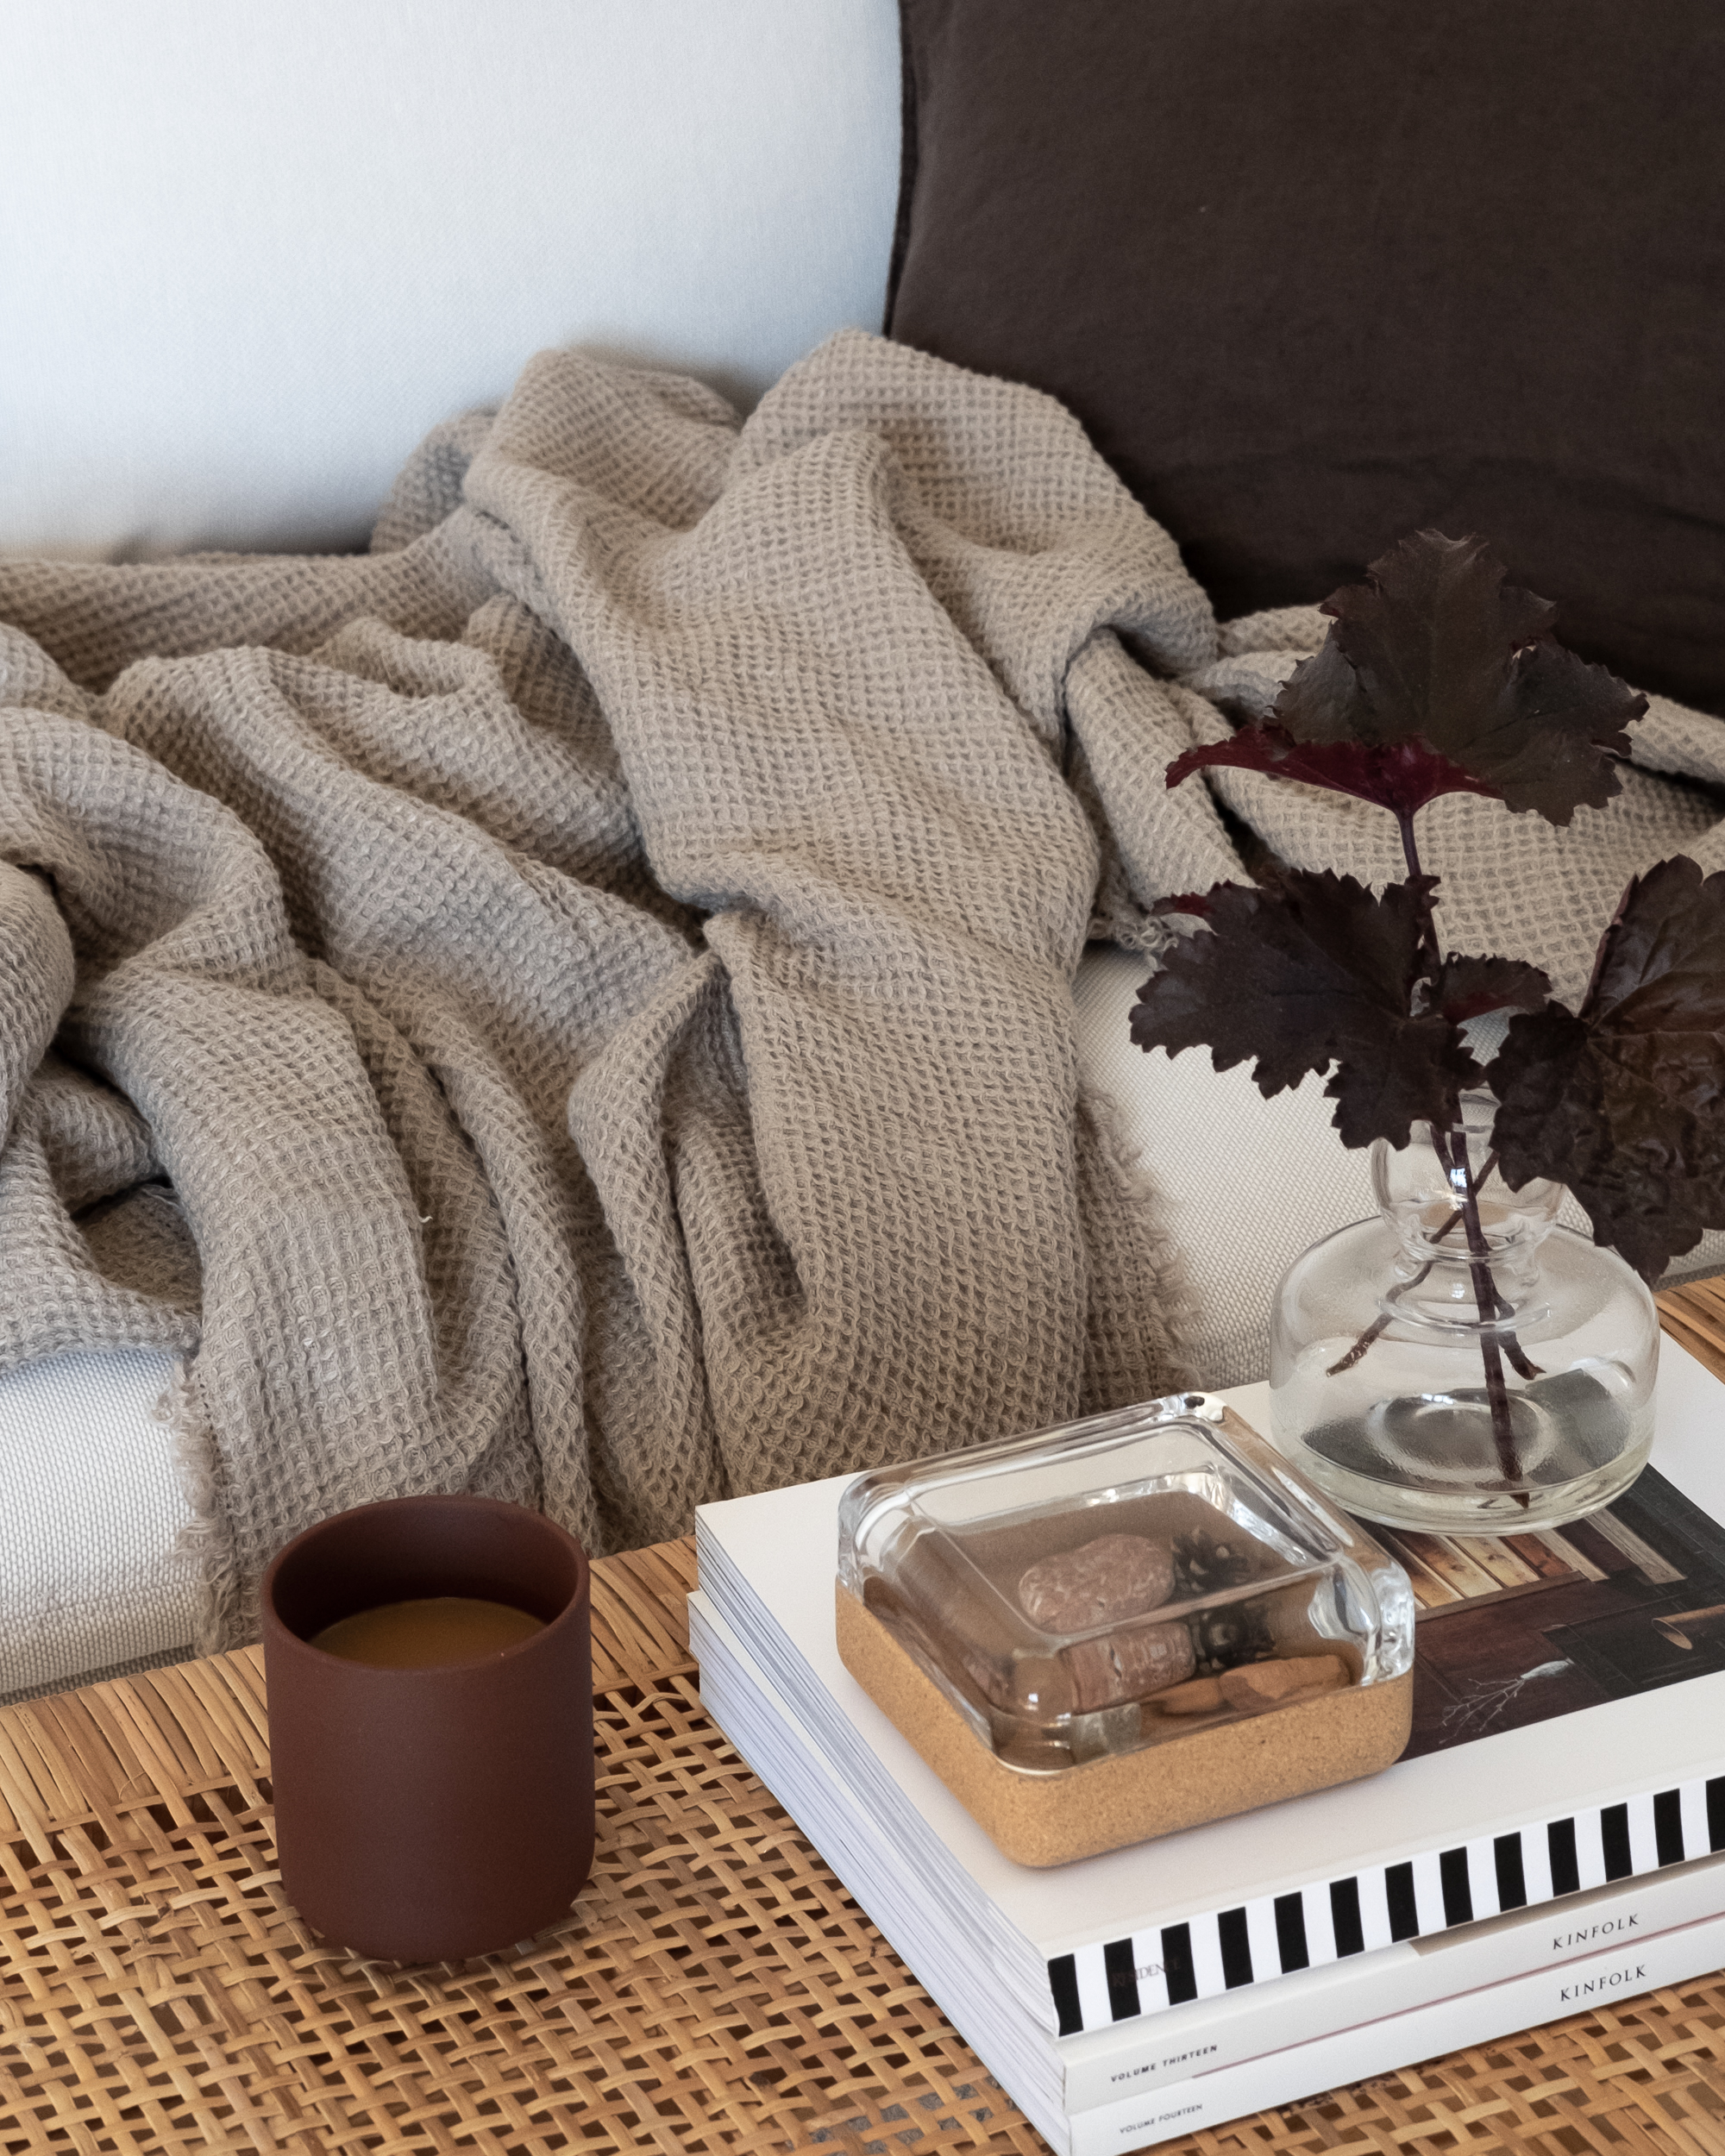 Living room details in natural and brown colors by Studio Anu Reinson.jpg